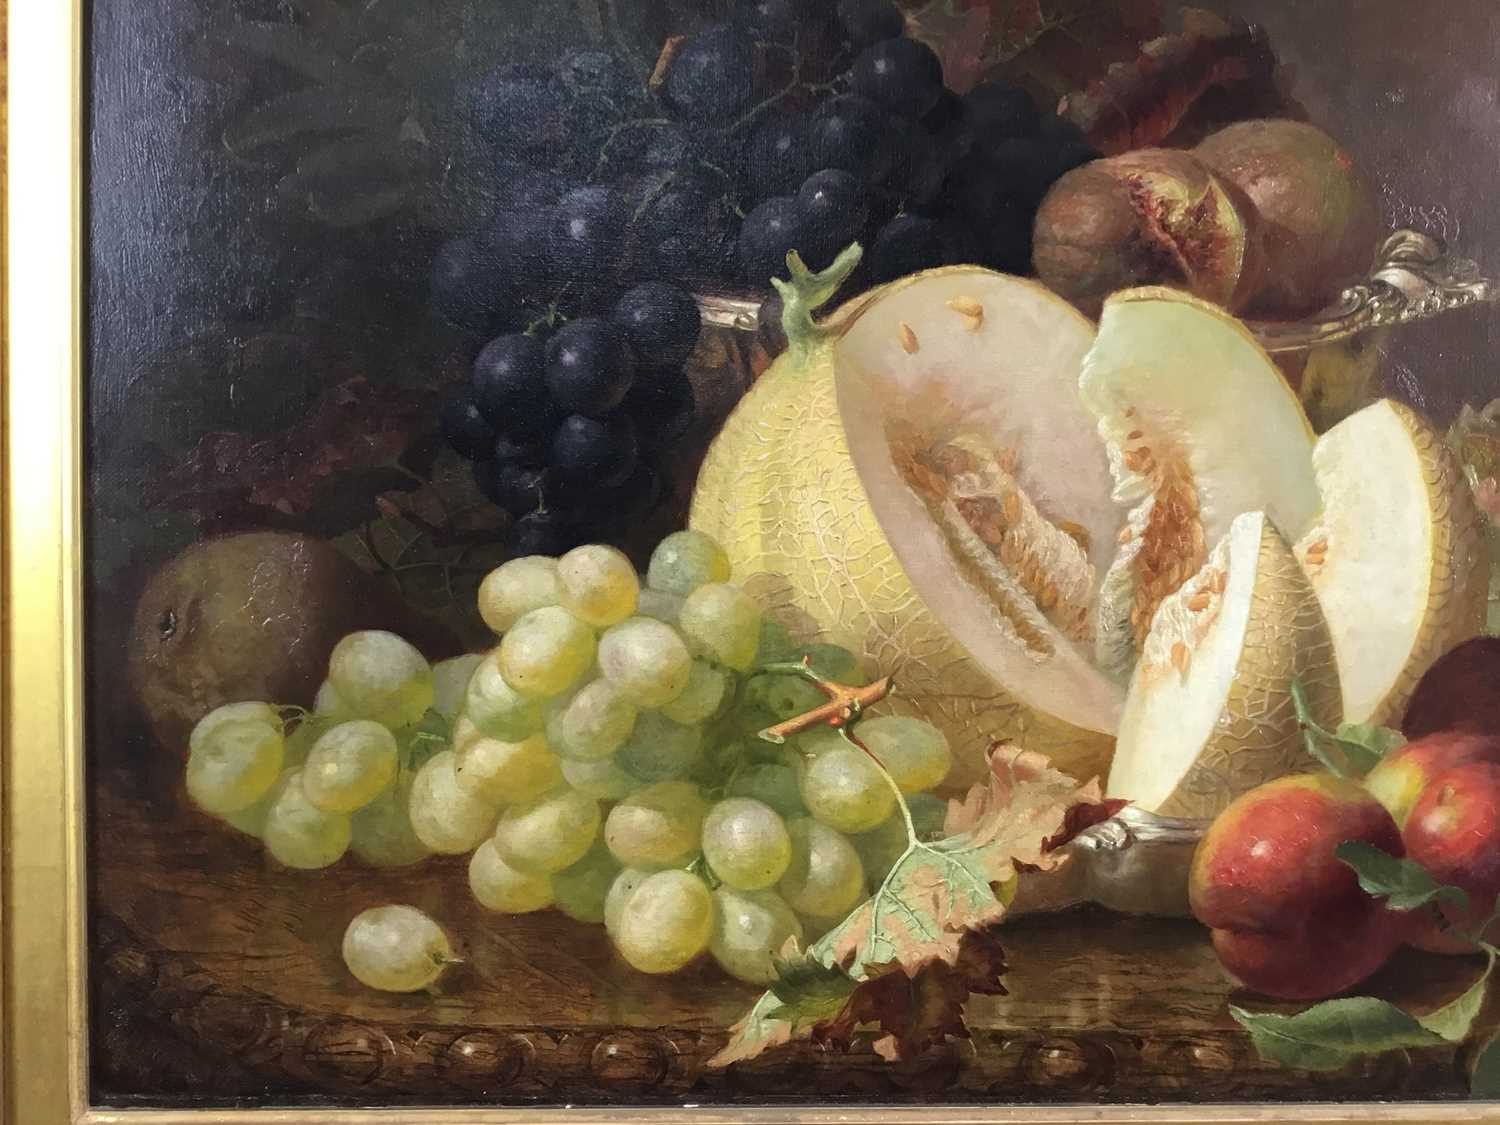 Eloise Harriet Stannard (1828-1915) oil on canvas, Peaches and grapes - Image 4 of 10